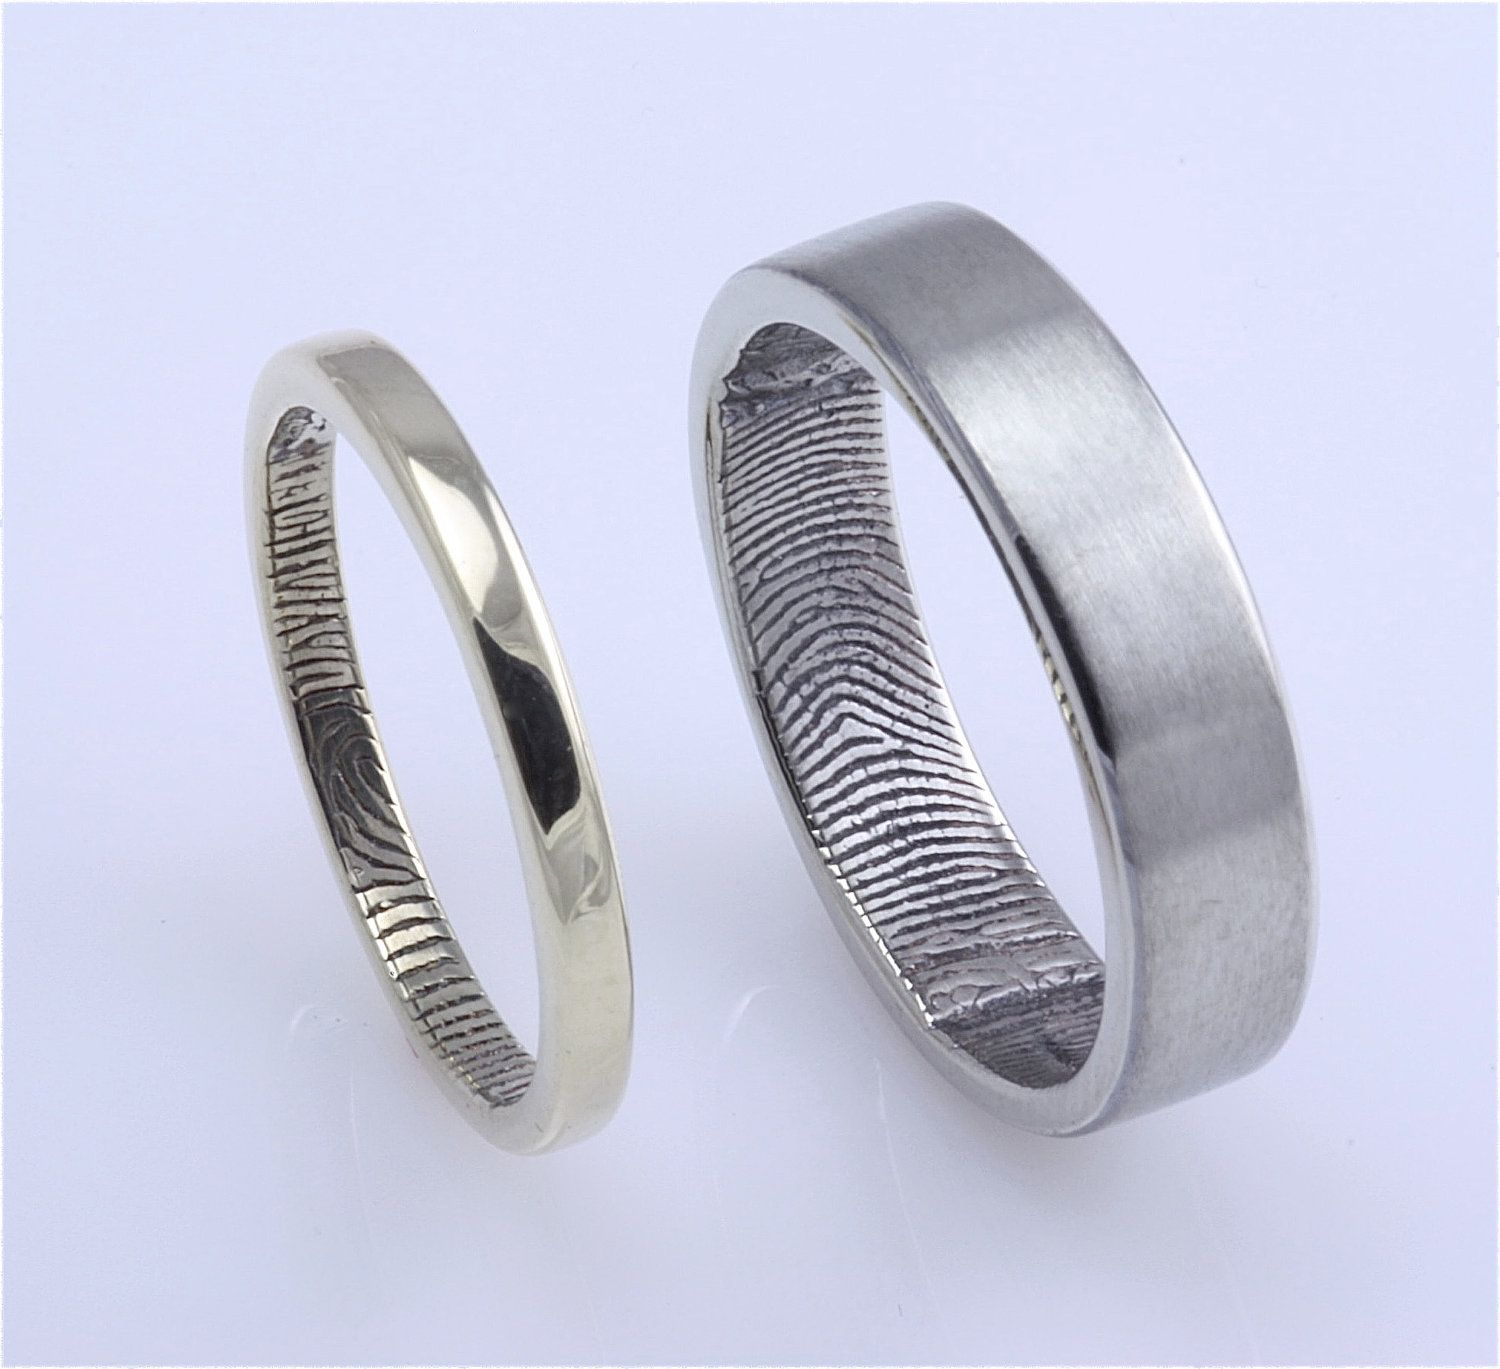 apracticalwedding fingerprint jess rings handcrafted brent com pin wedding